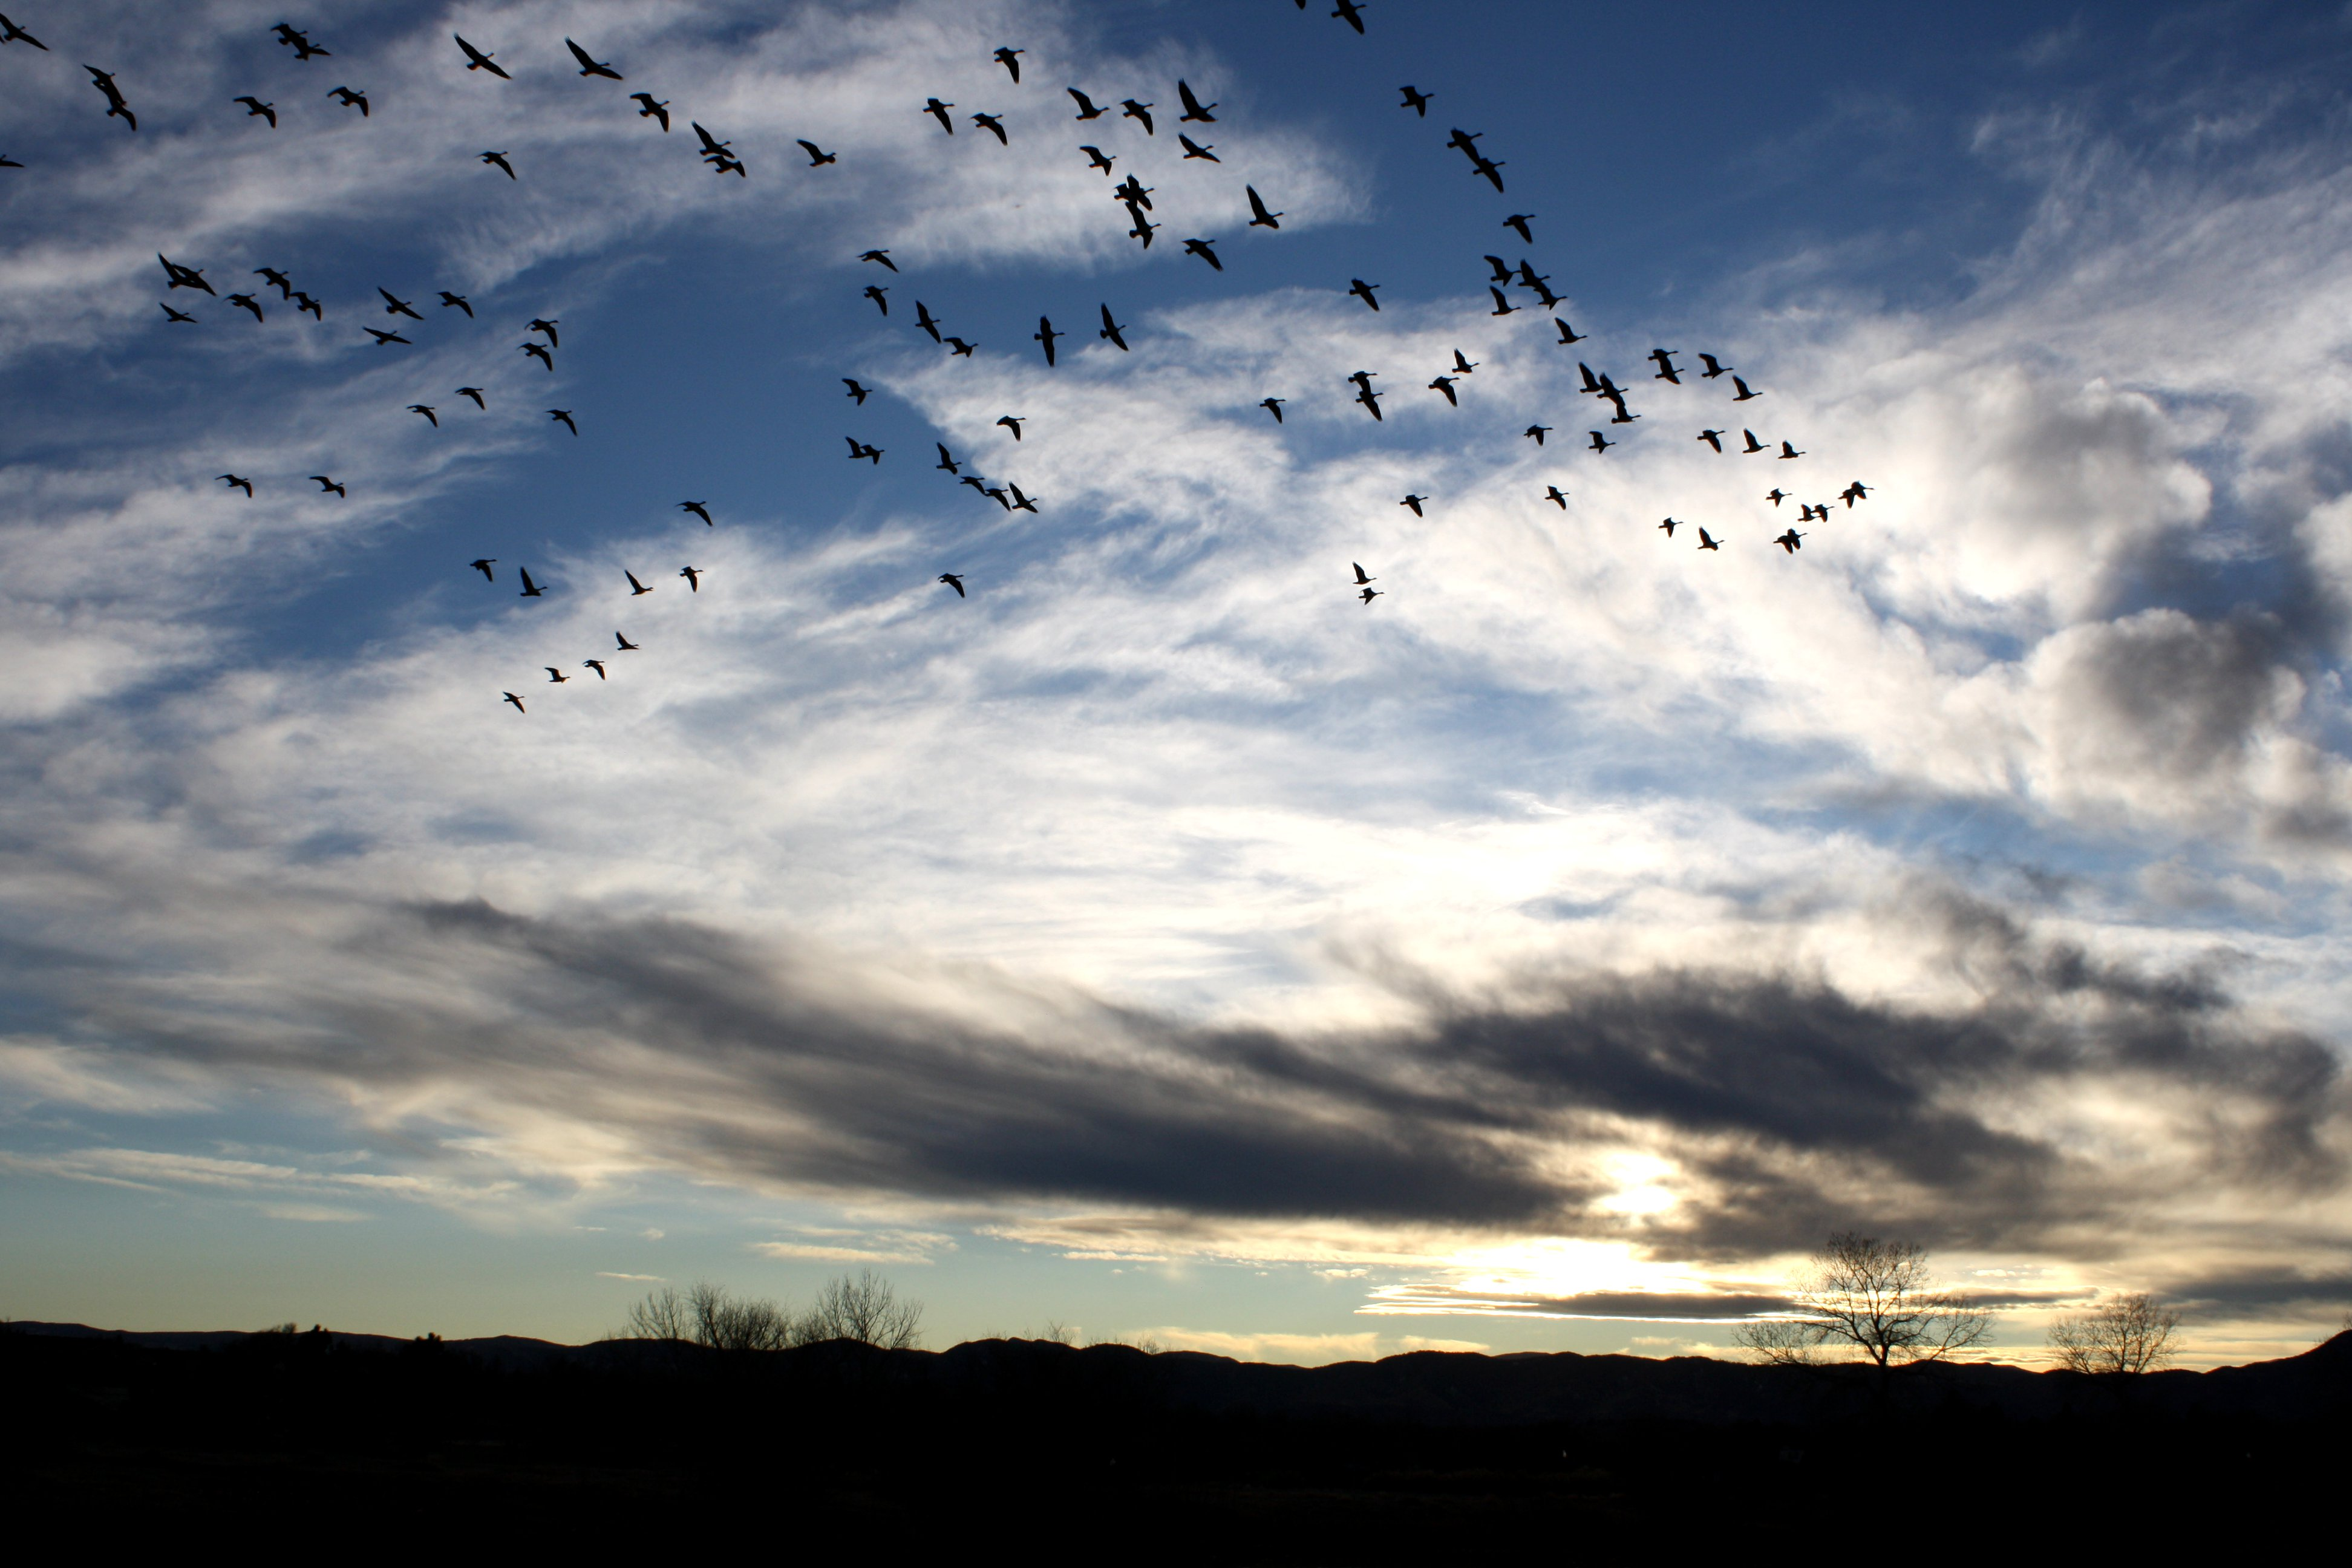 flock-of-birds-in-sky.jpg